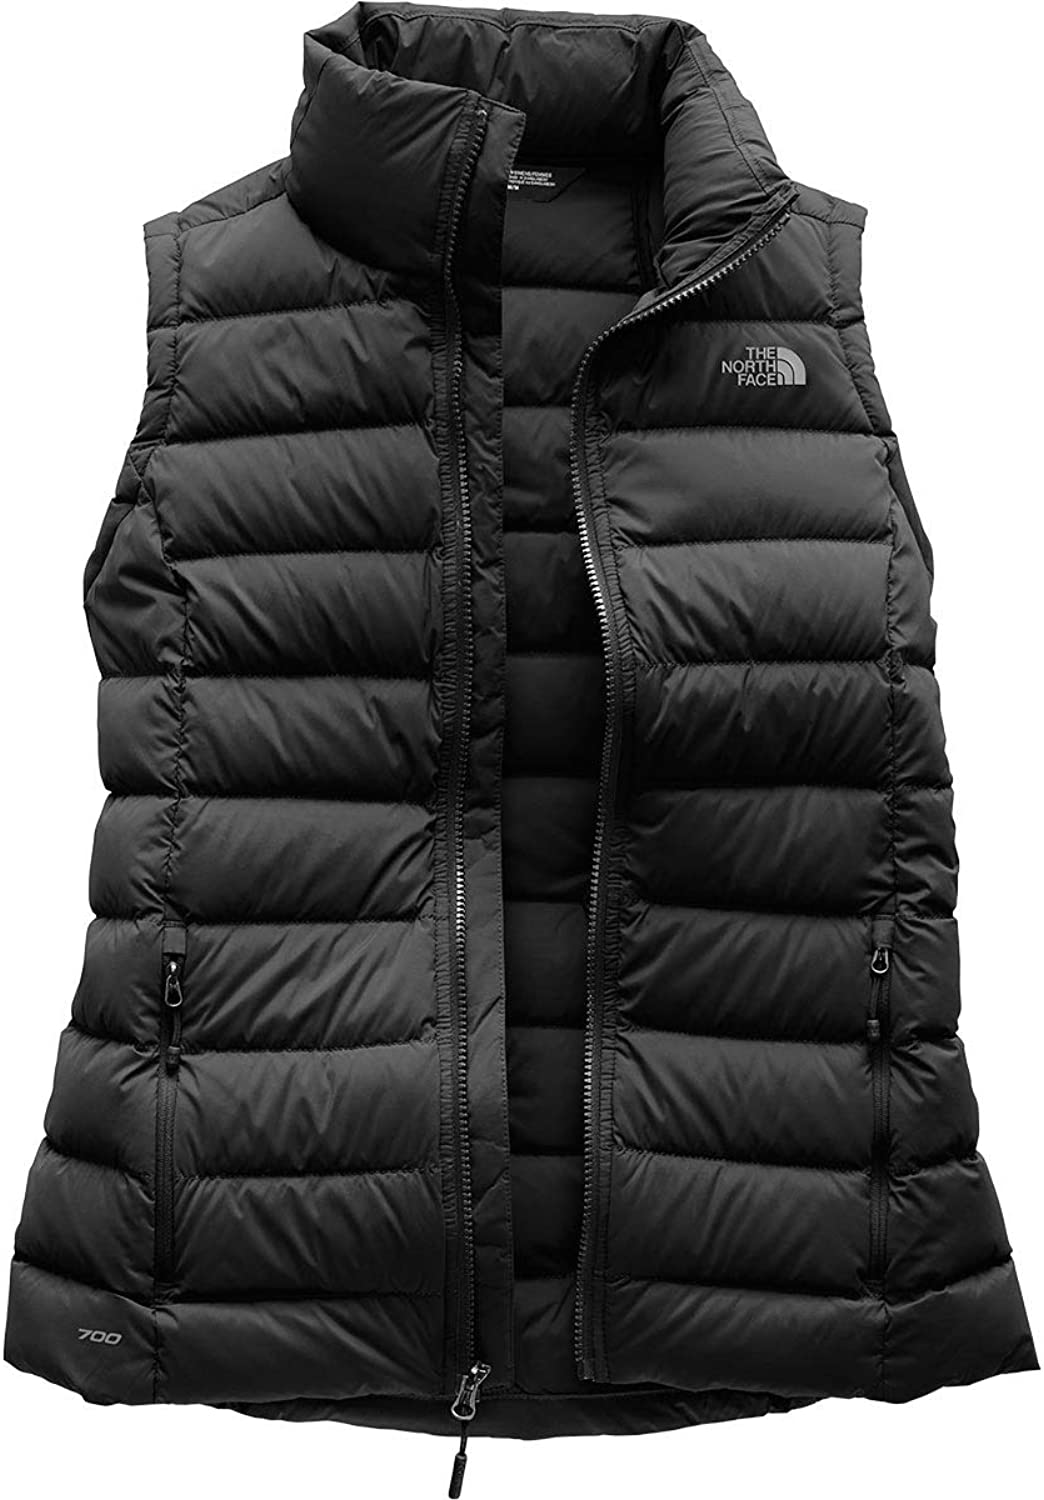 The North Face Stretch Down Vest  Women's